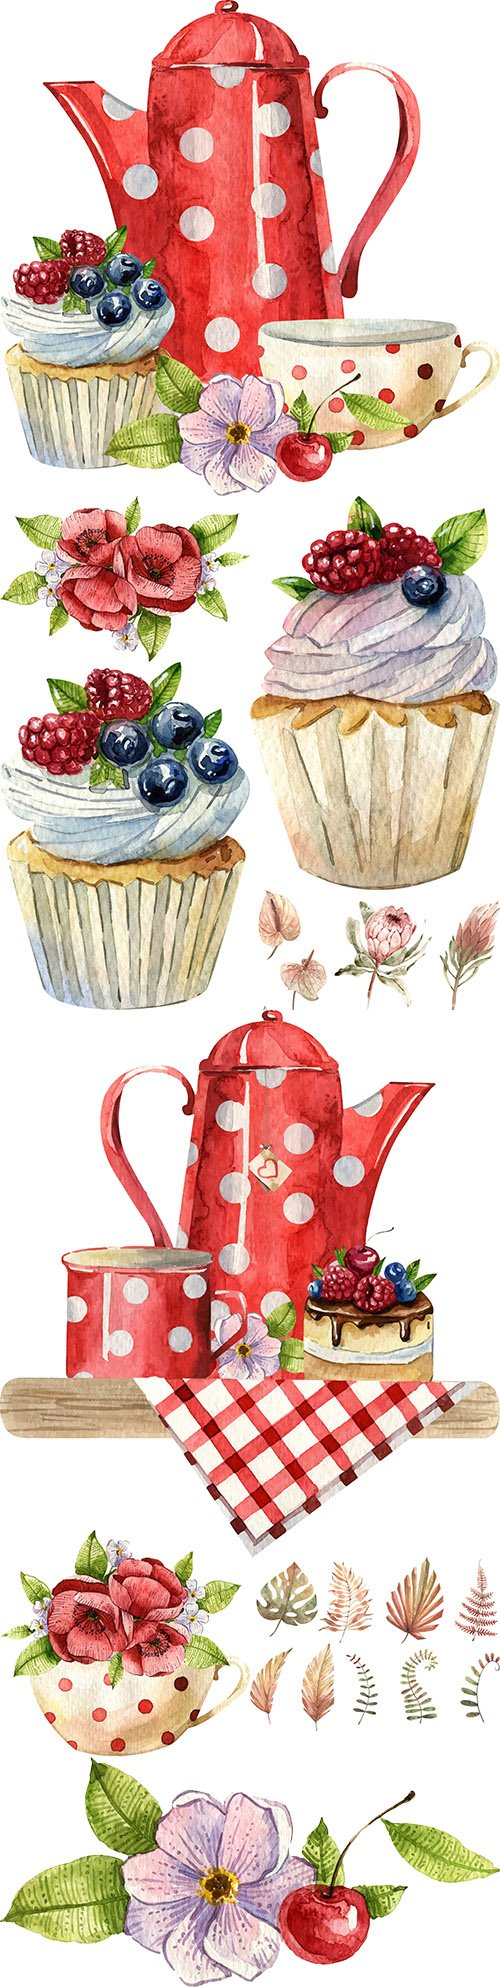 Breakfast tea time and cake summer watercolor illustration